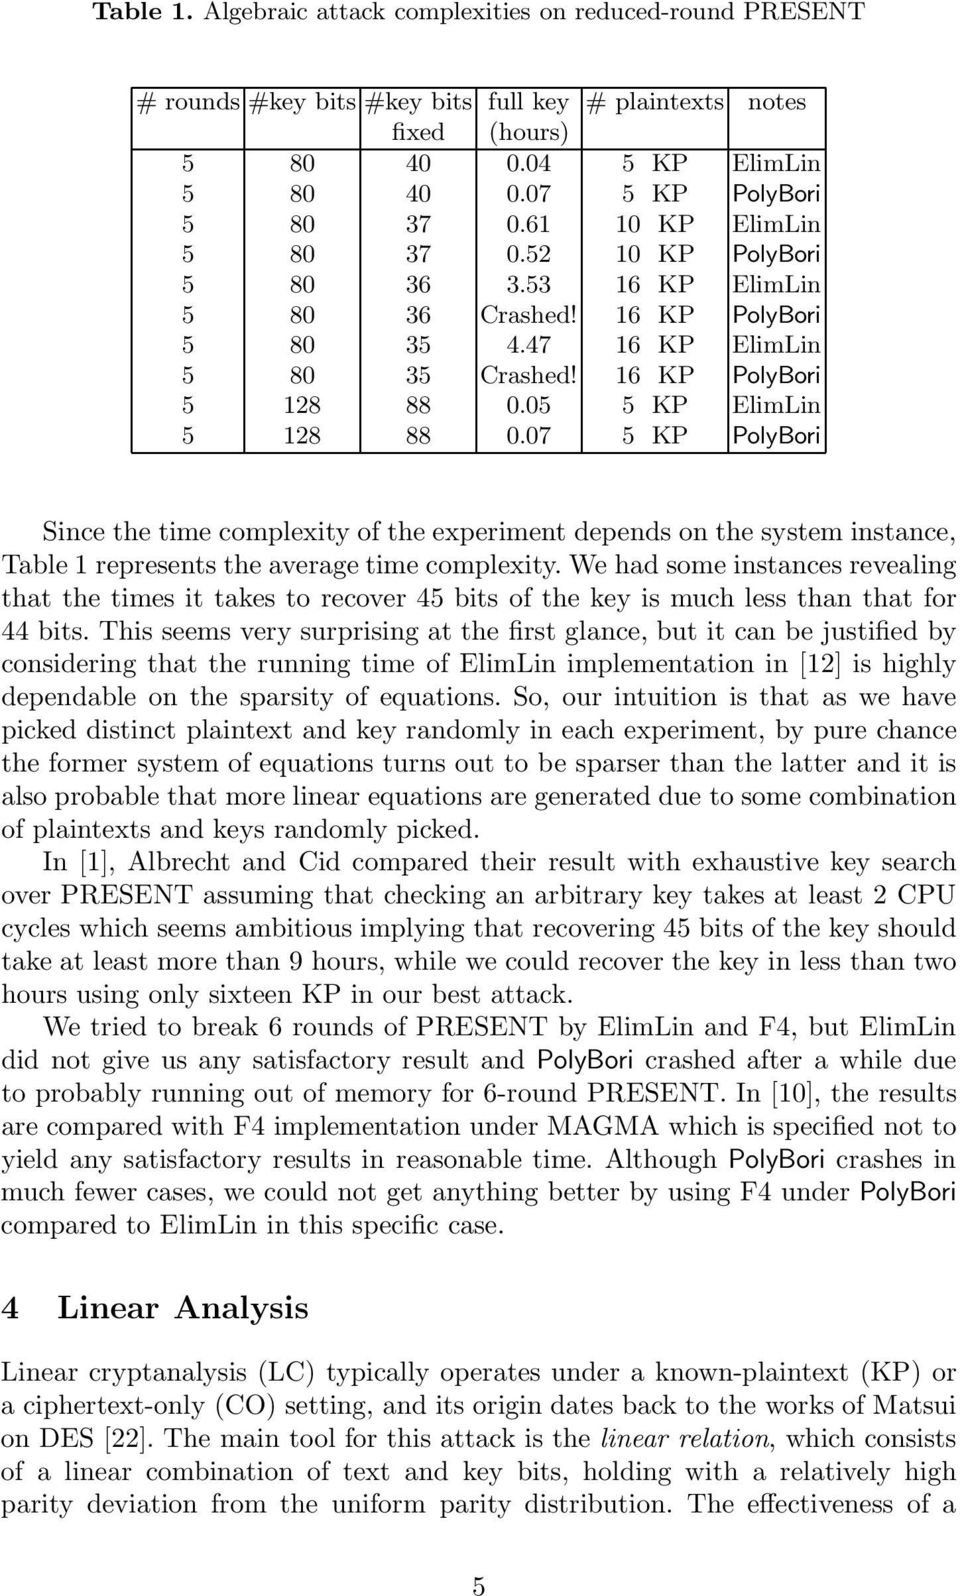 05 5 KP ElimLin 5 128 88 0.07 5 KP PolyBori Since the time complexity of the experiment depends on the system instance, Table 1 represents the average time complexity.